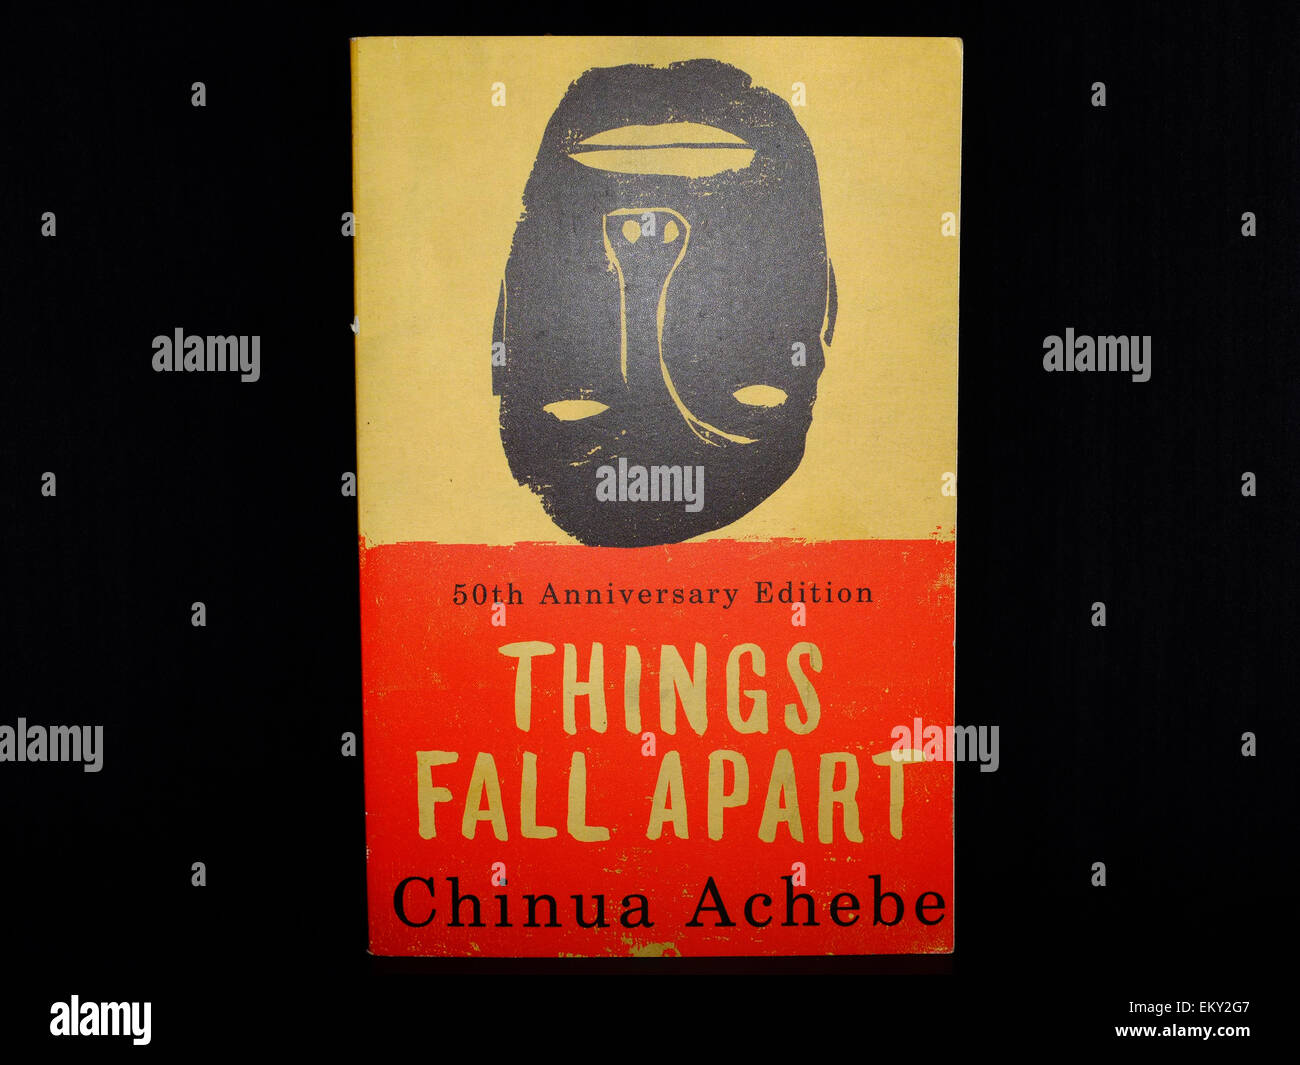 book report on things fall apart Unlike most editing & proofreading services, we edit for everything: grammar, spelling, punctuation, idea flow, sentence structure, & more get started now.